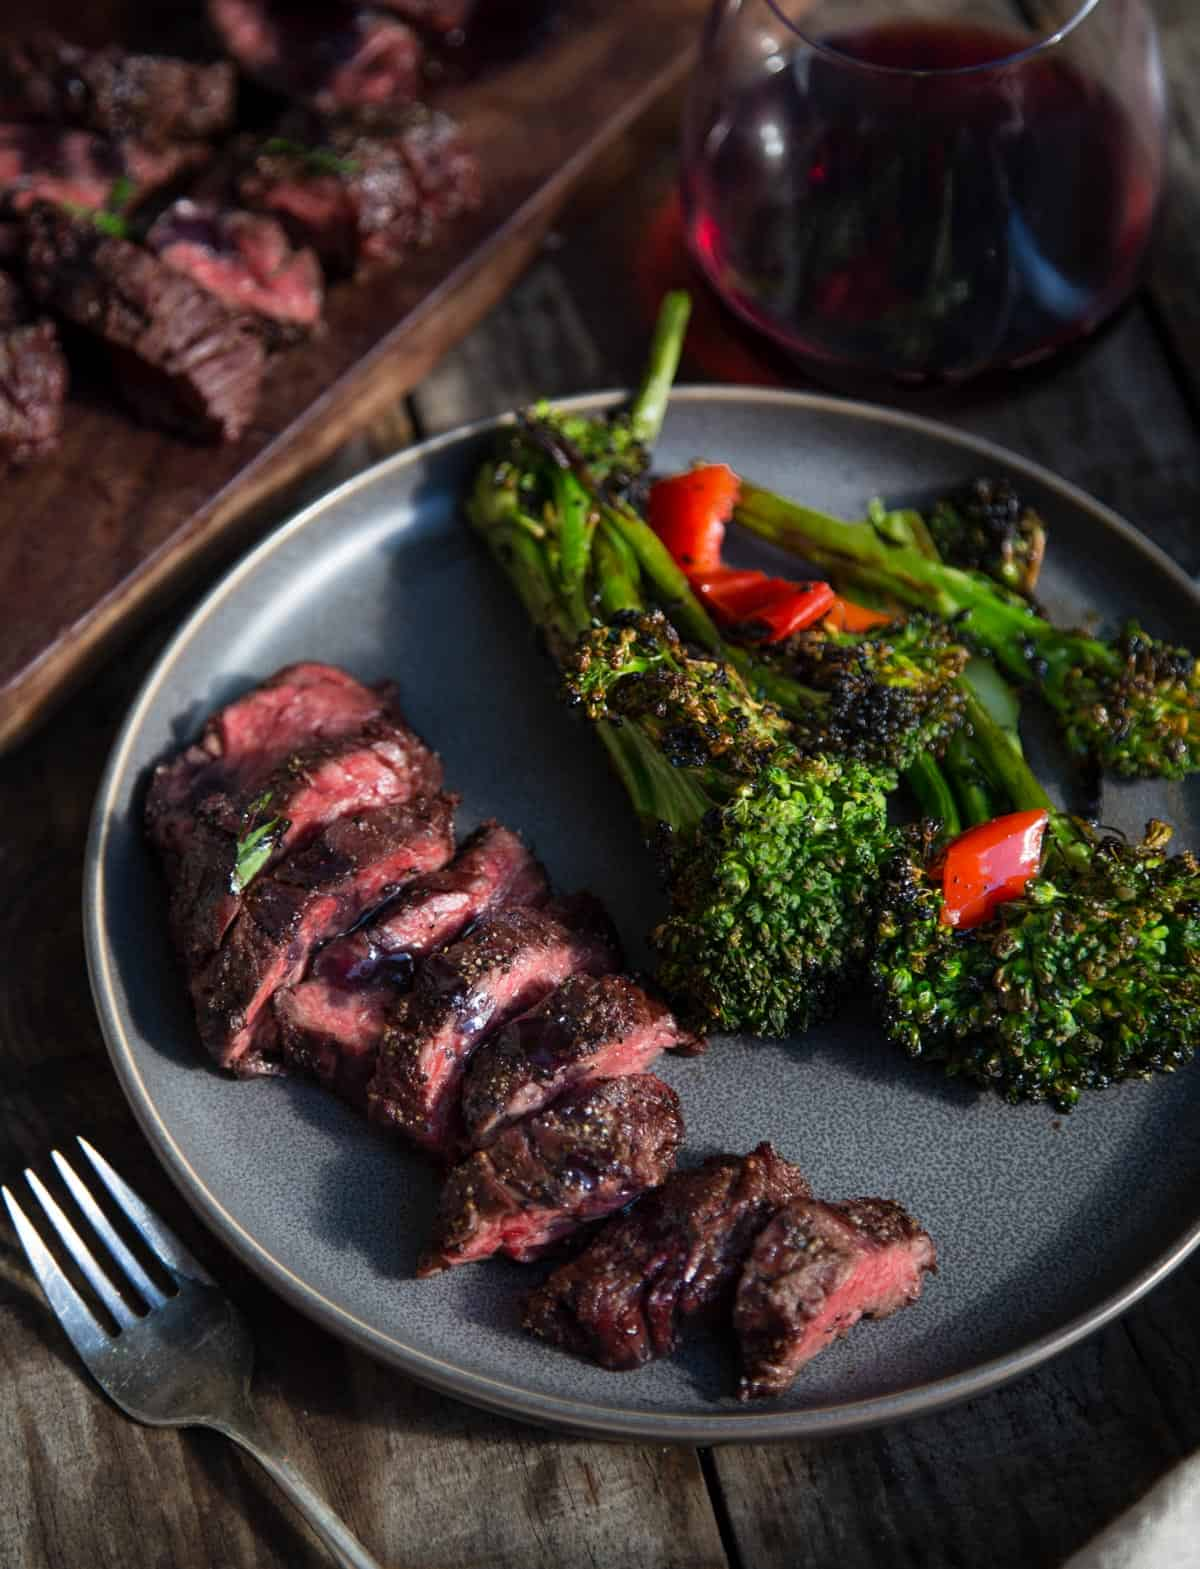 A plate with grilled beef and a side of broccolini